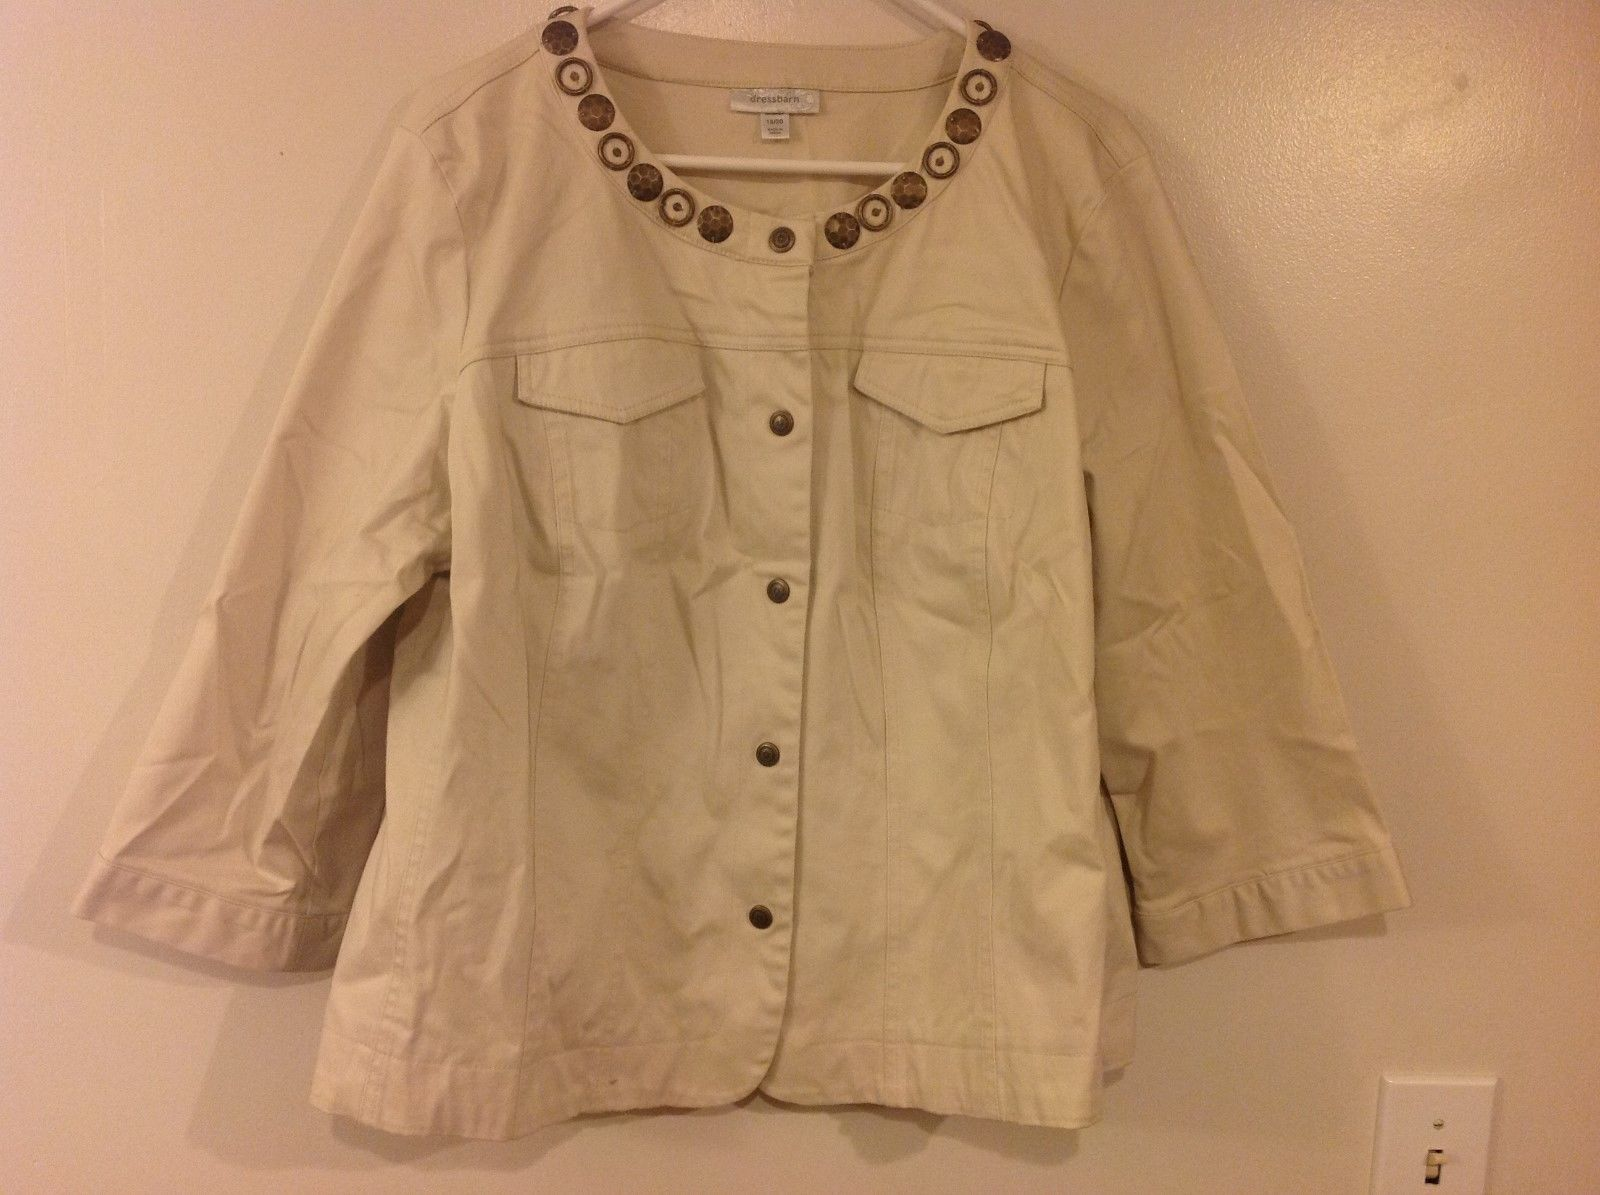 DressBarn Sand Colored 3/4 Sleeve Short Jacket Sz 18/20